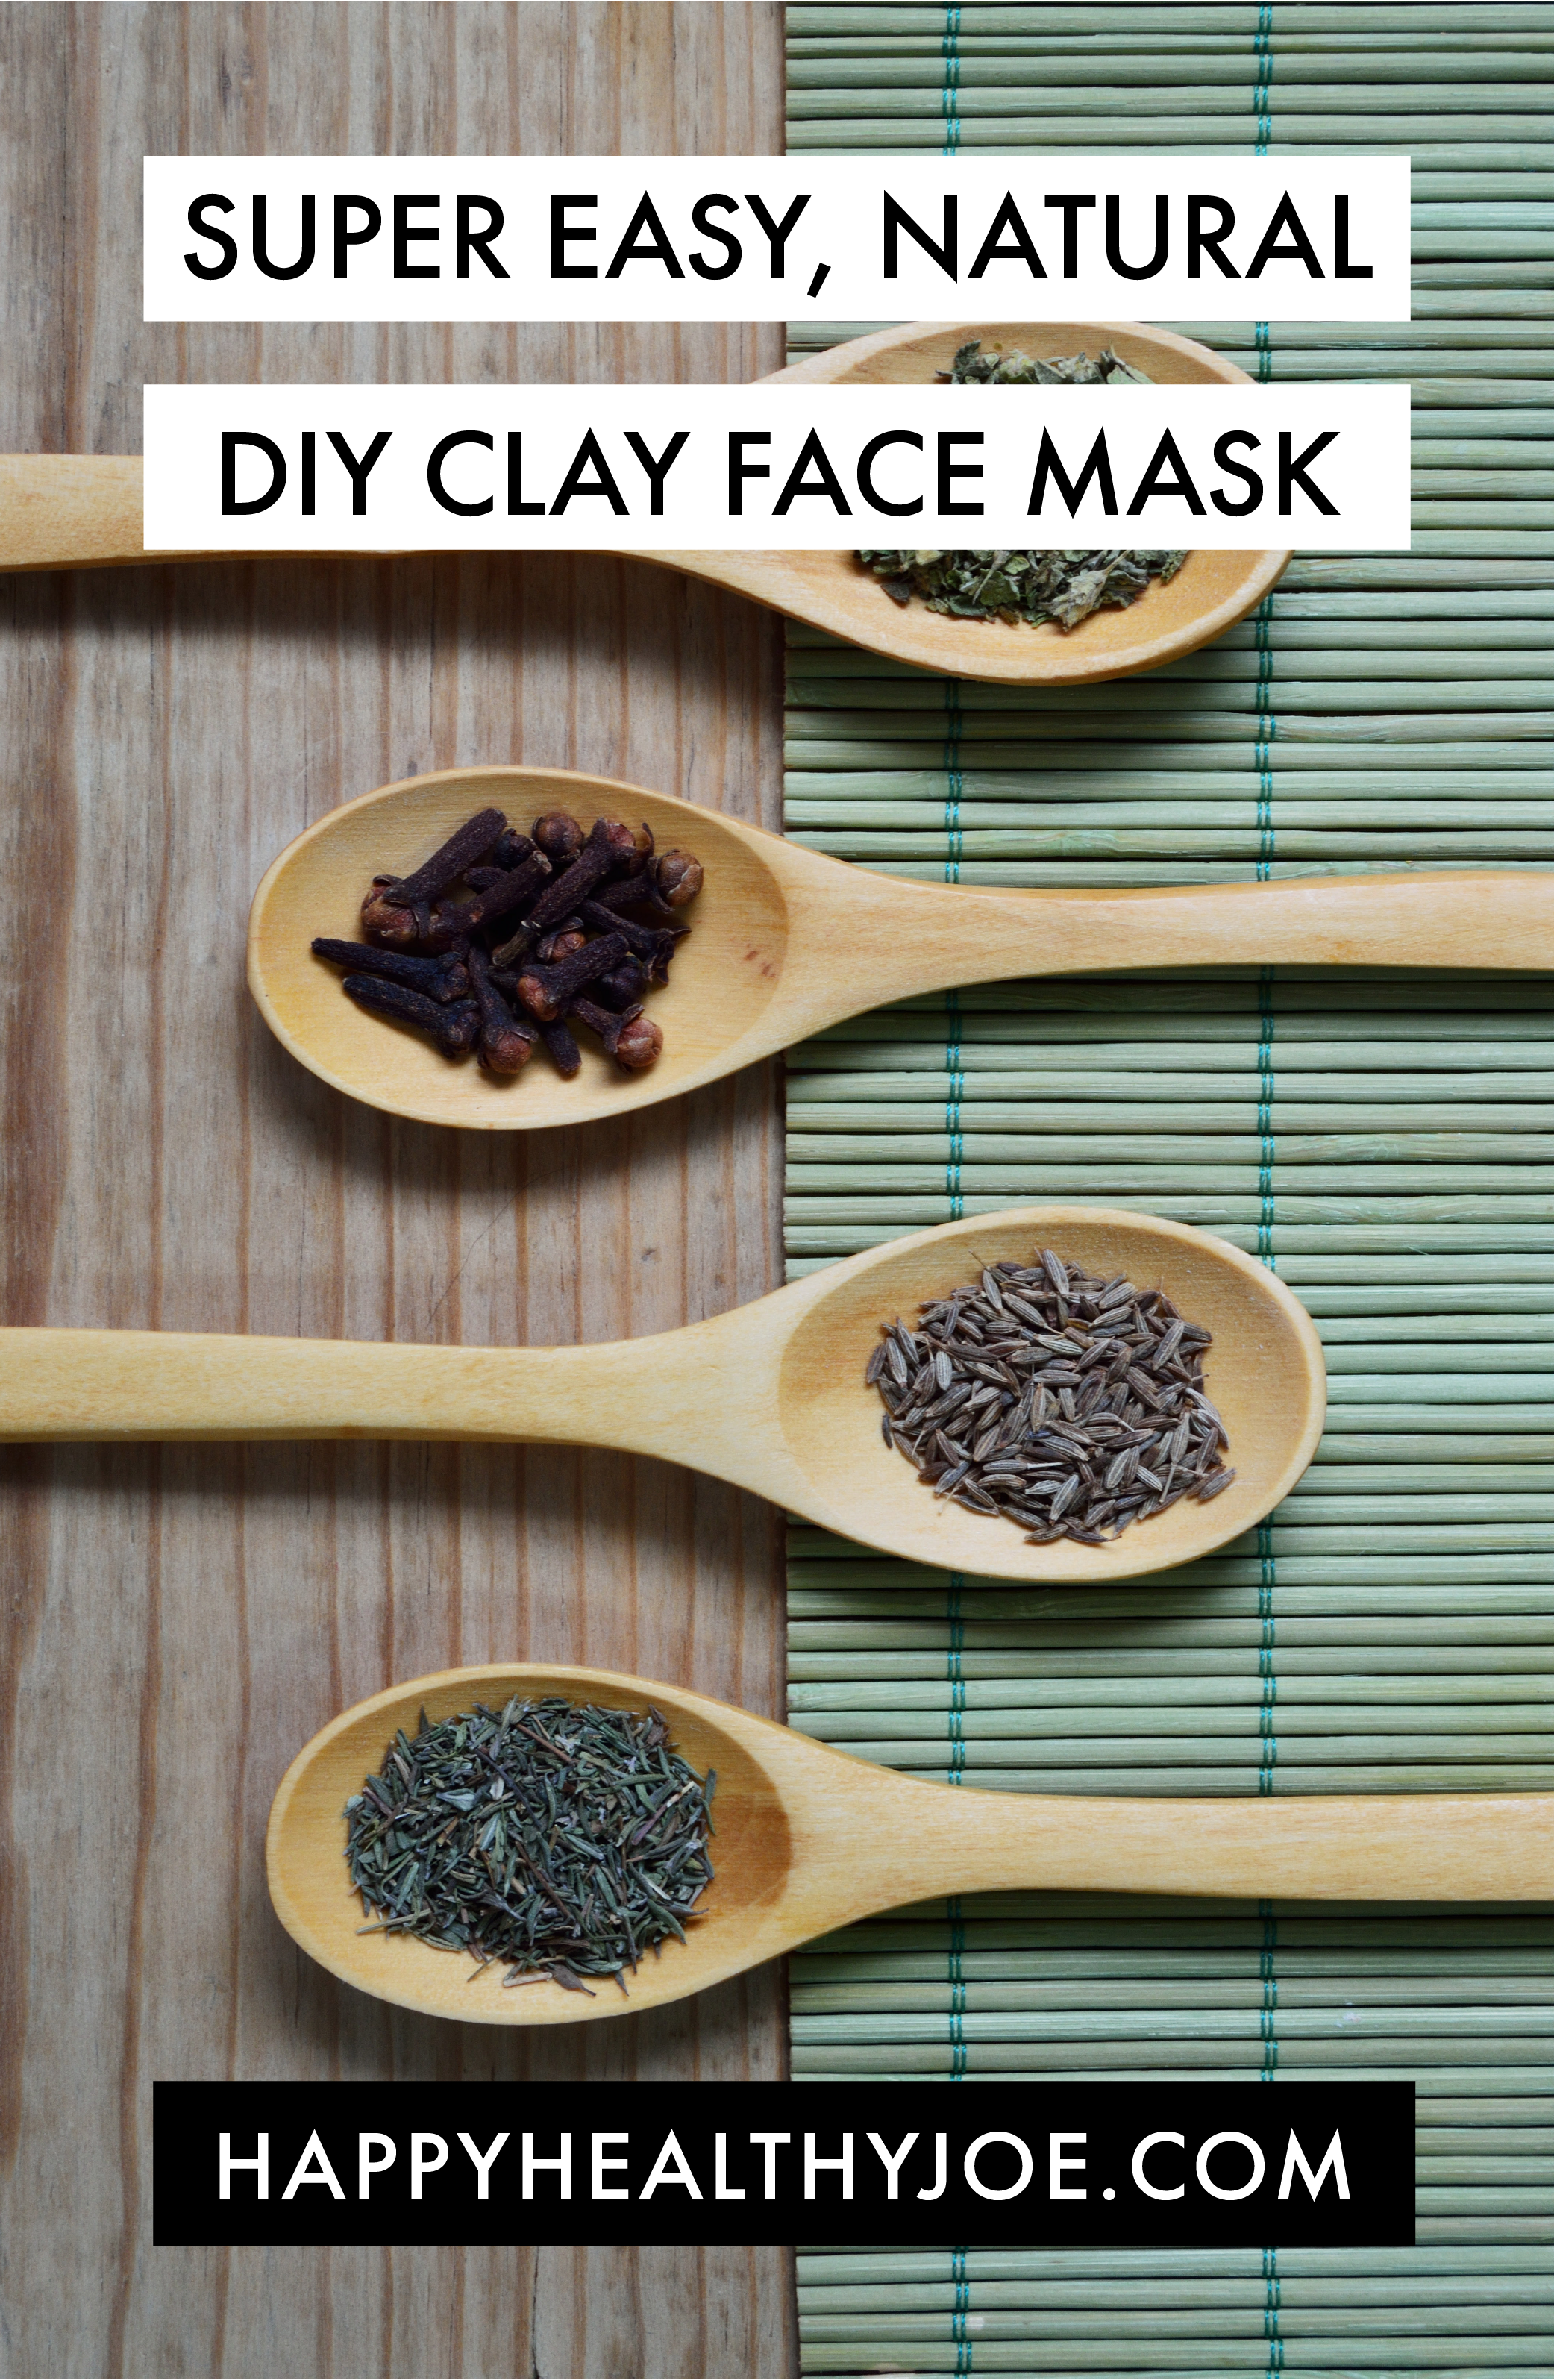 DIY Clay Face Mask With doTERRA Essential Oils